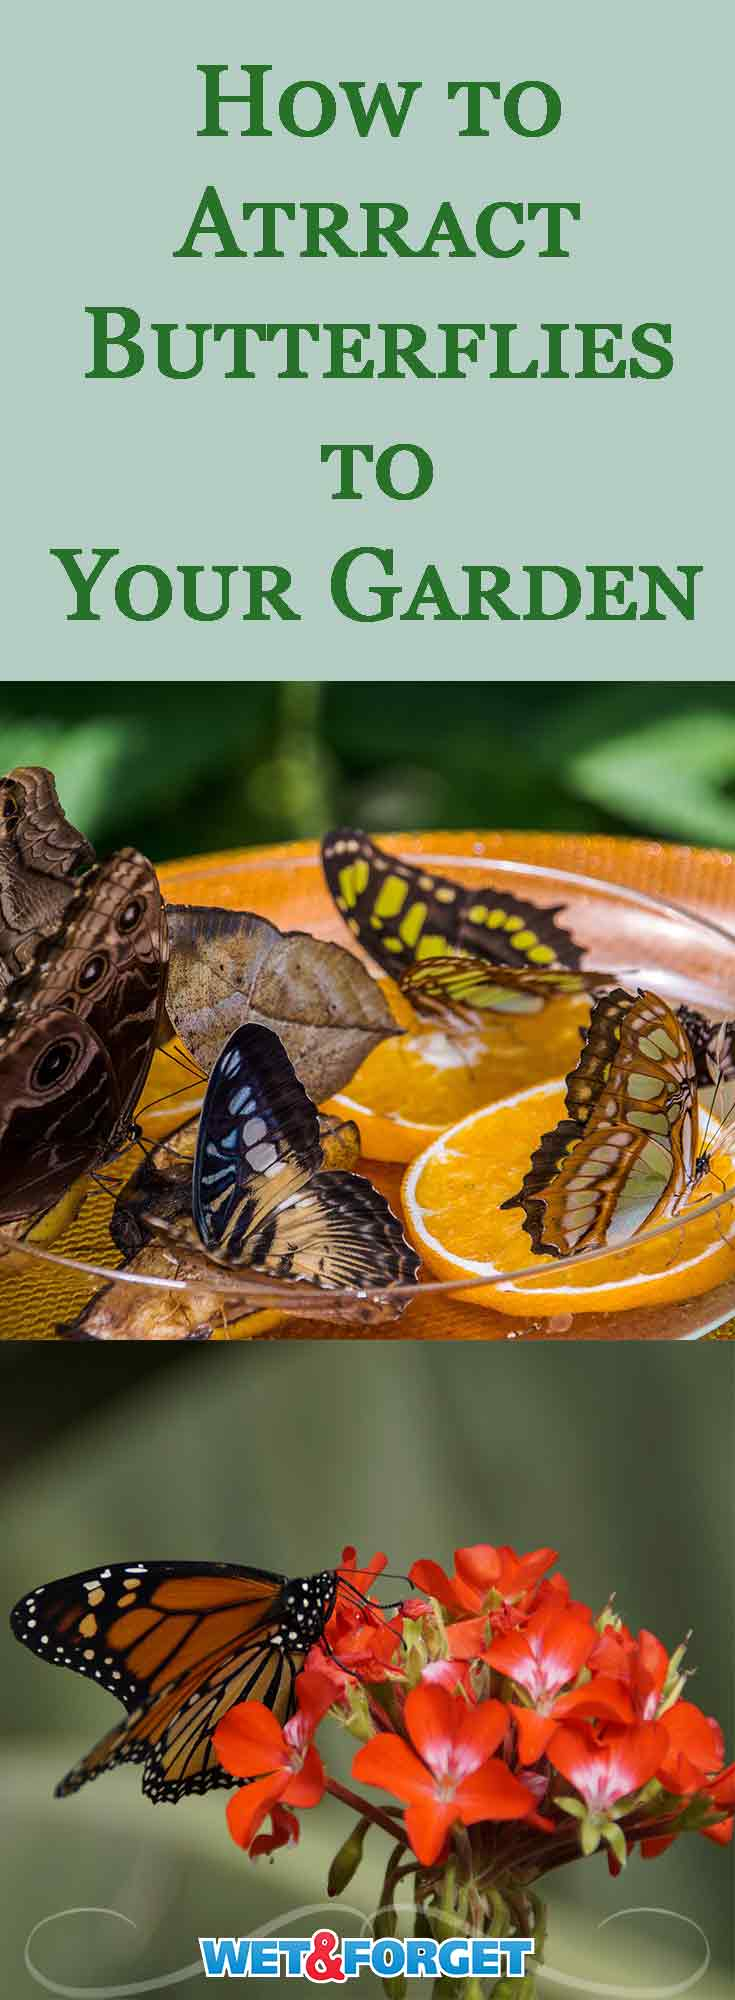 Let nature beautify your garden with butterflies! Attract more butterflies to your garden with these easy tips.